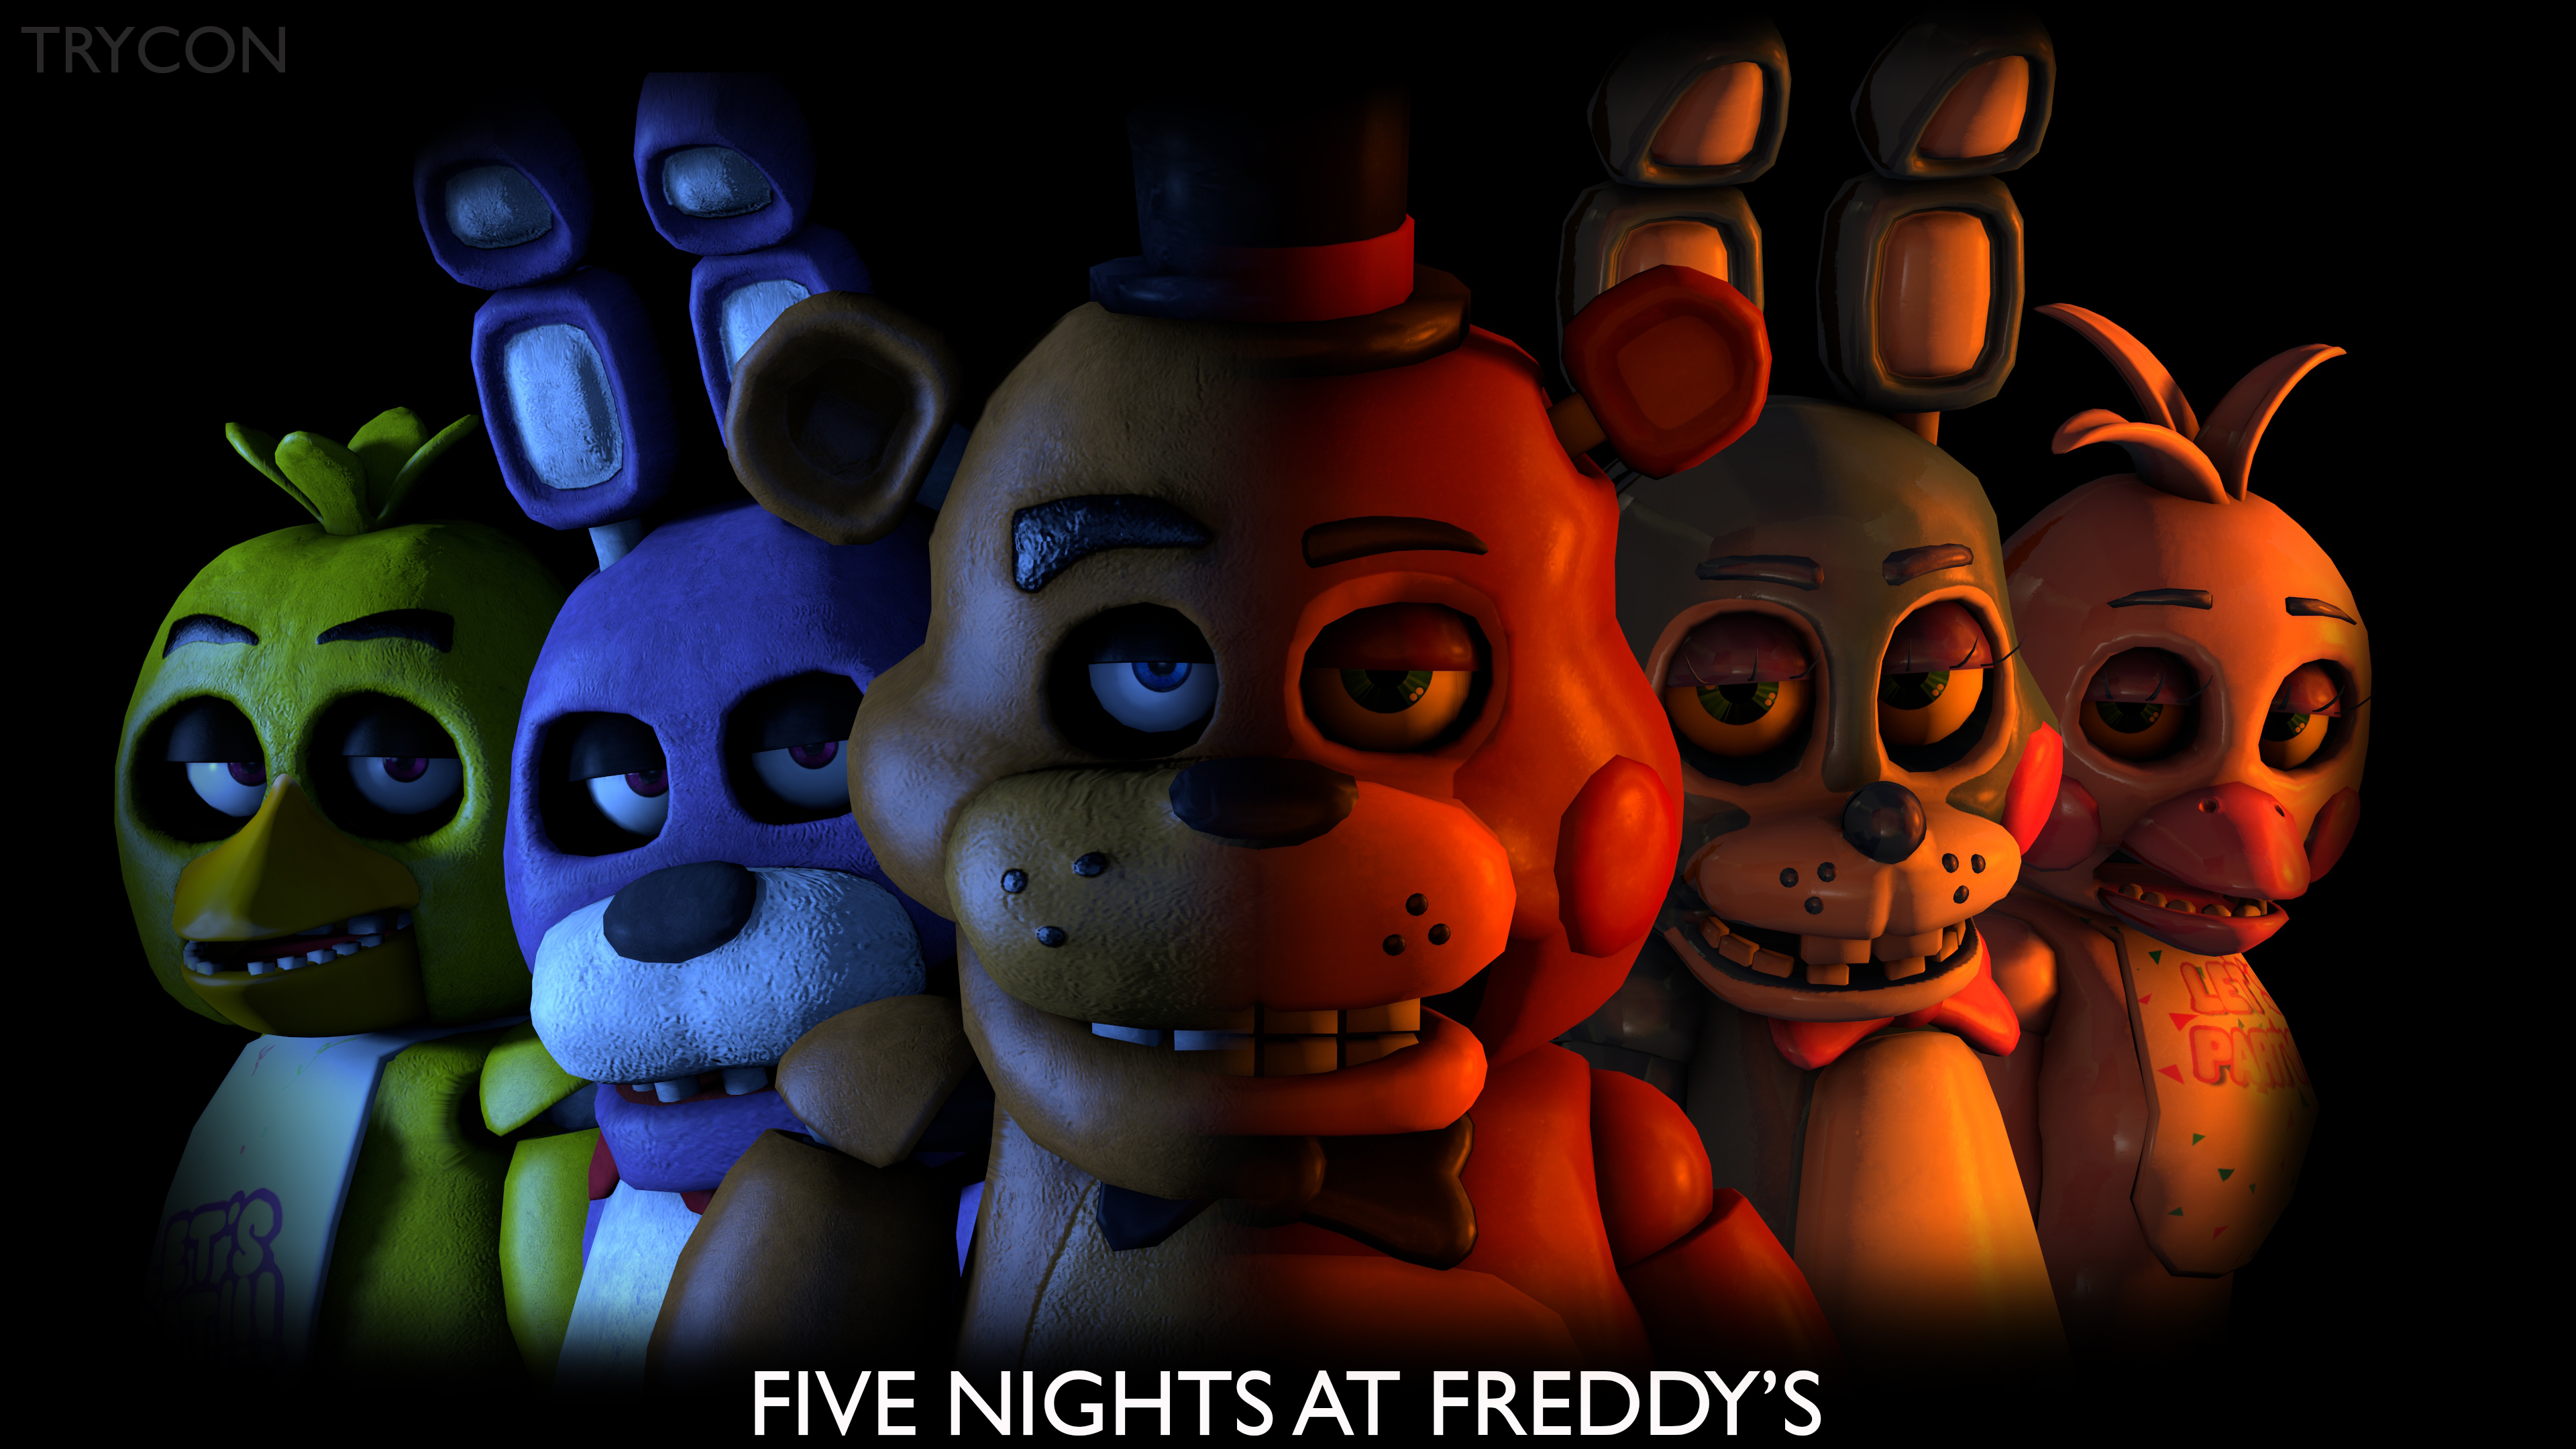 five_nights_at_freddy_s_banner_by_trycon1980-d93mp8i